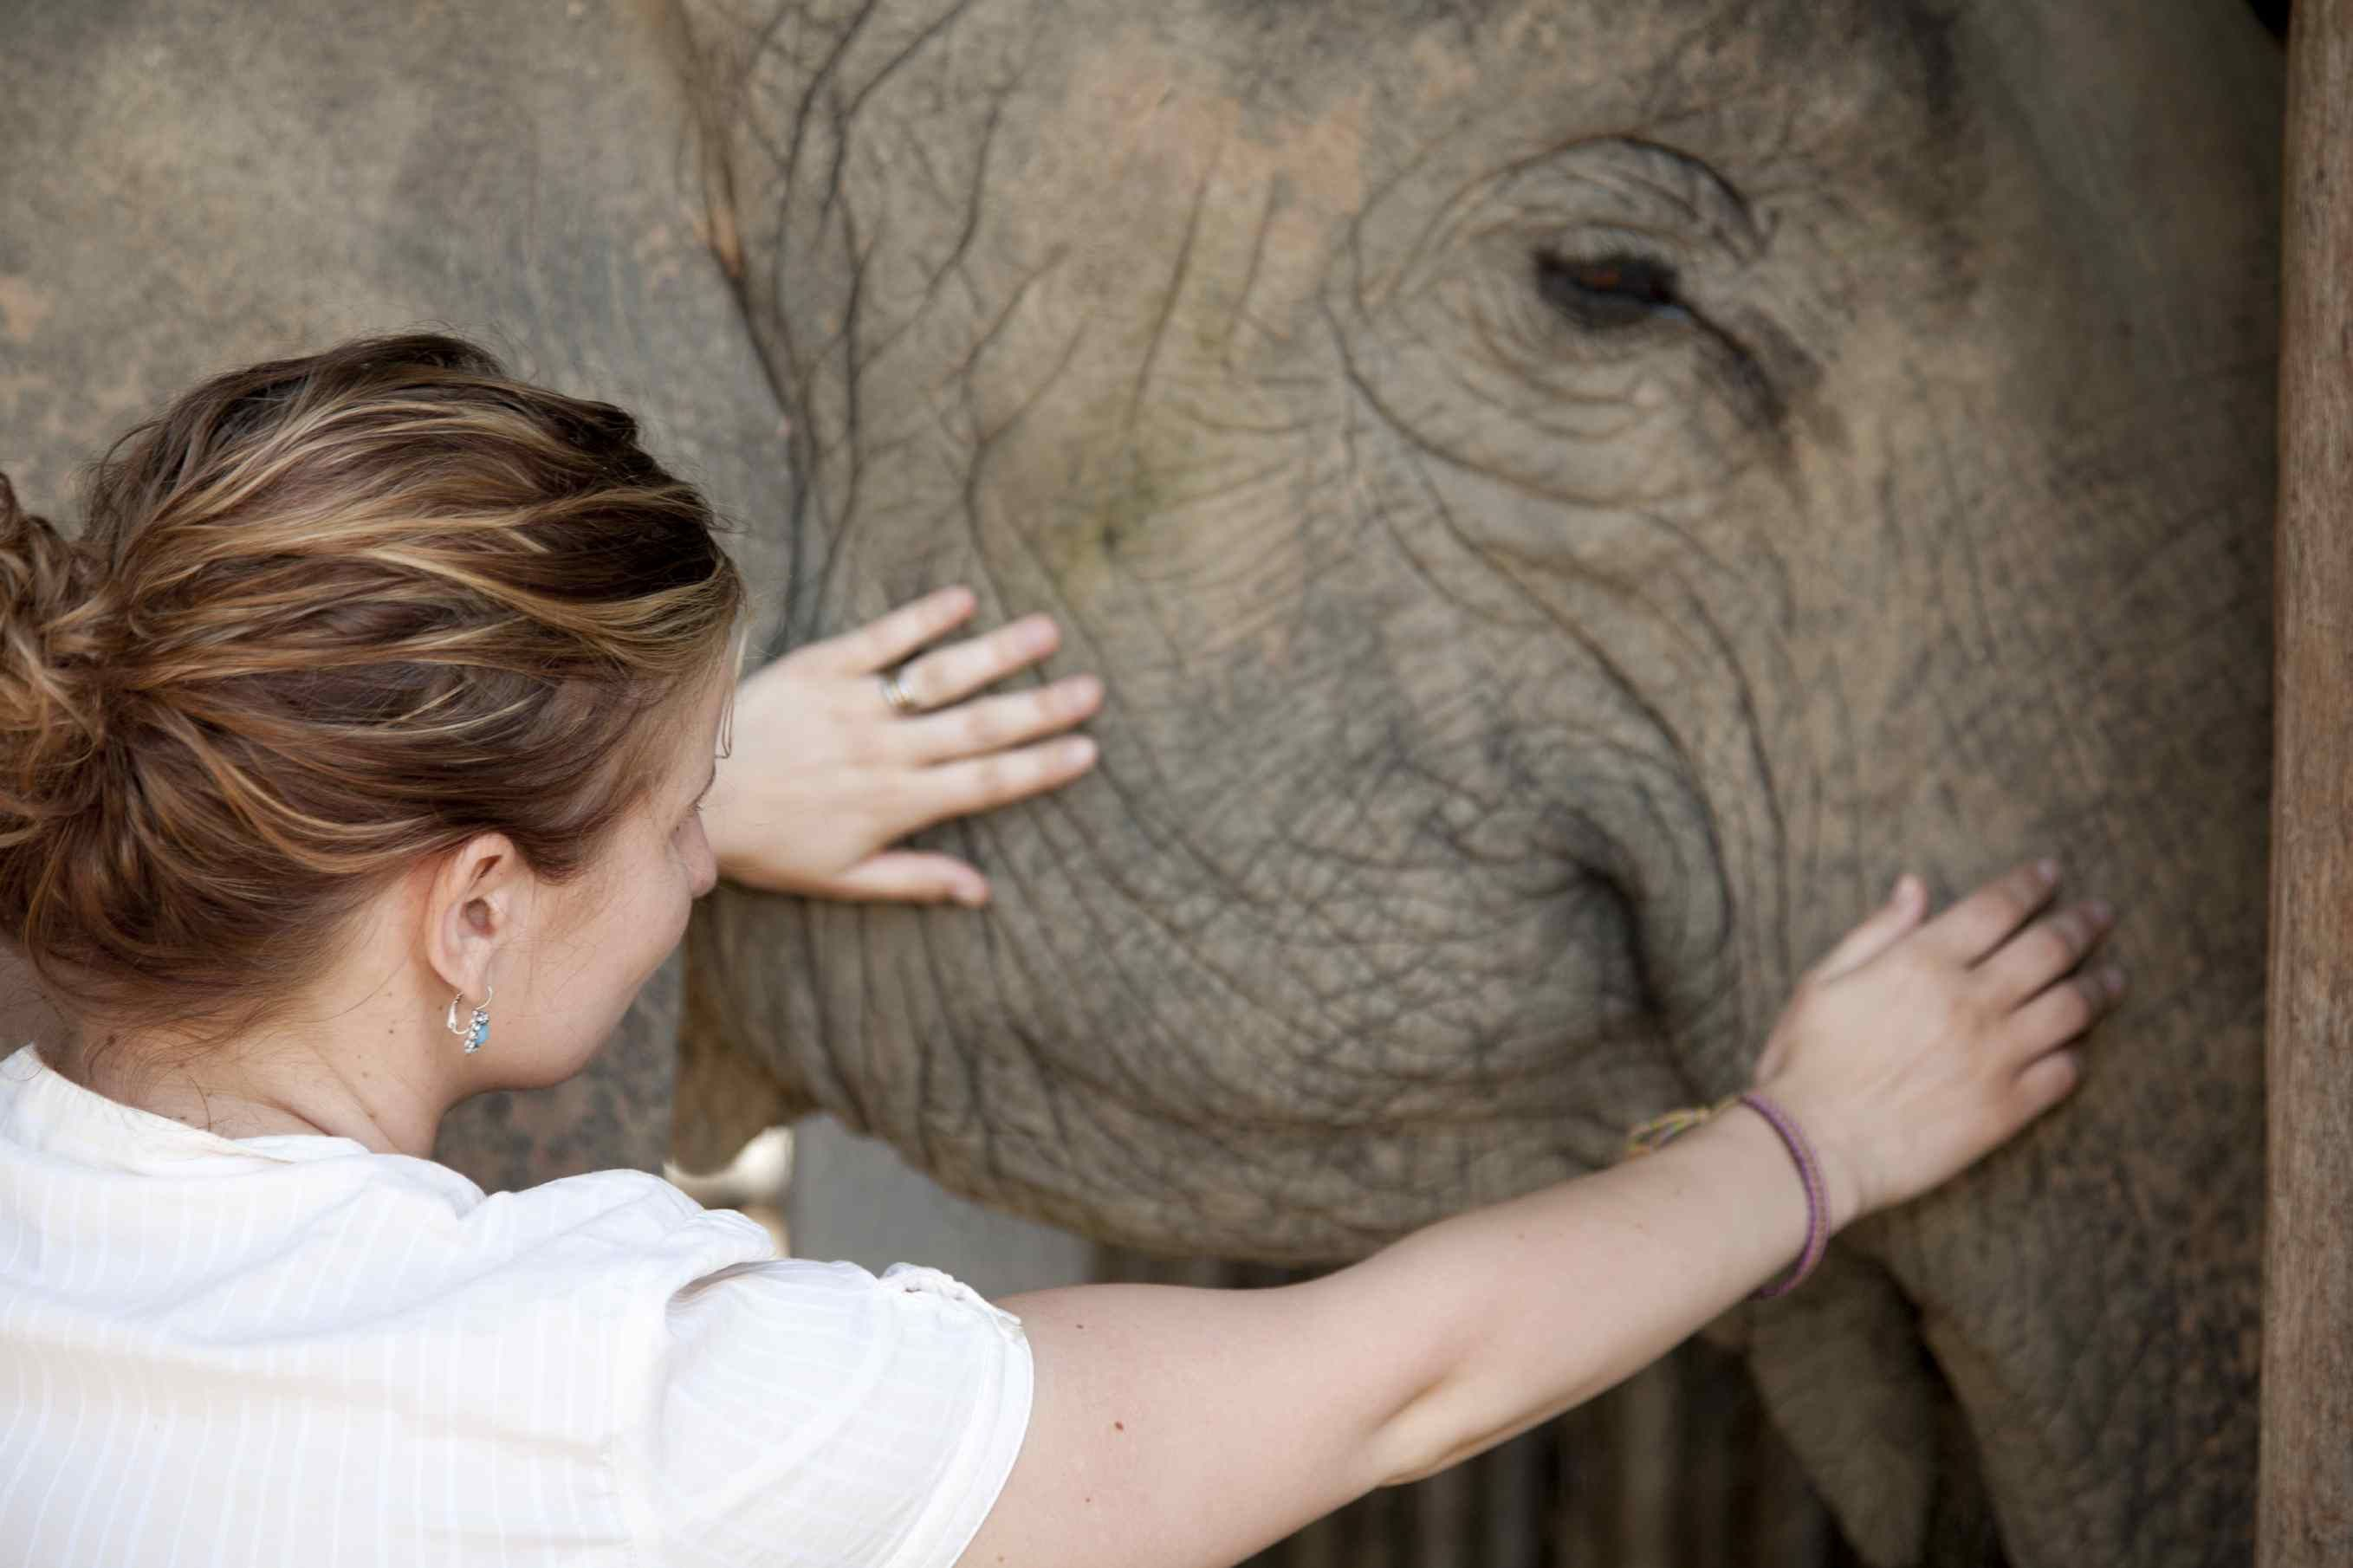 We love elephants! You will visit an elephant camp in Thailand while volunteering there.